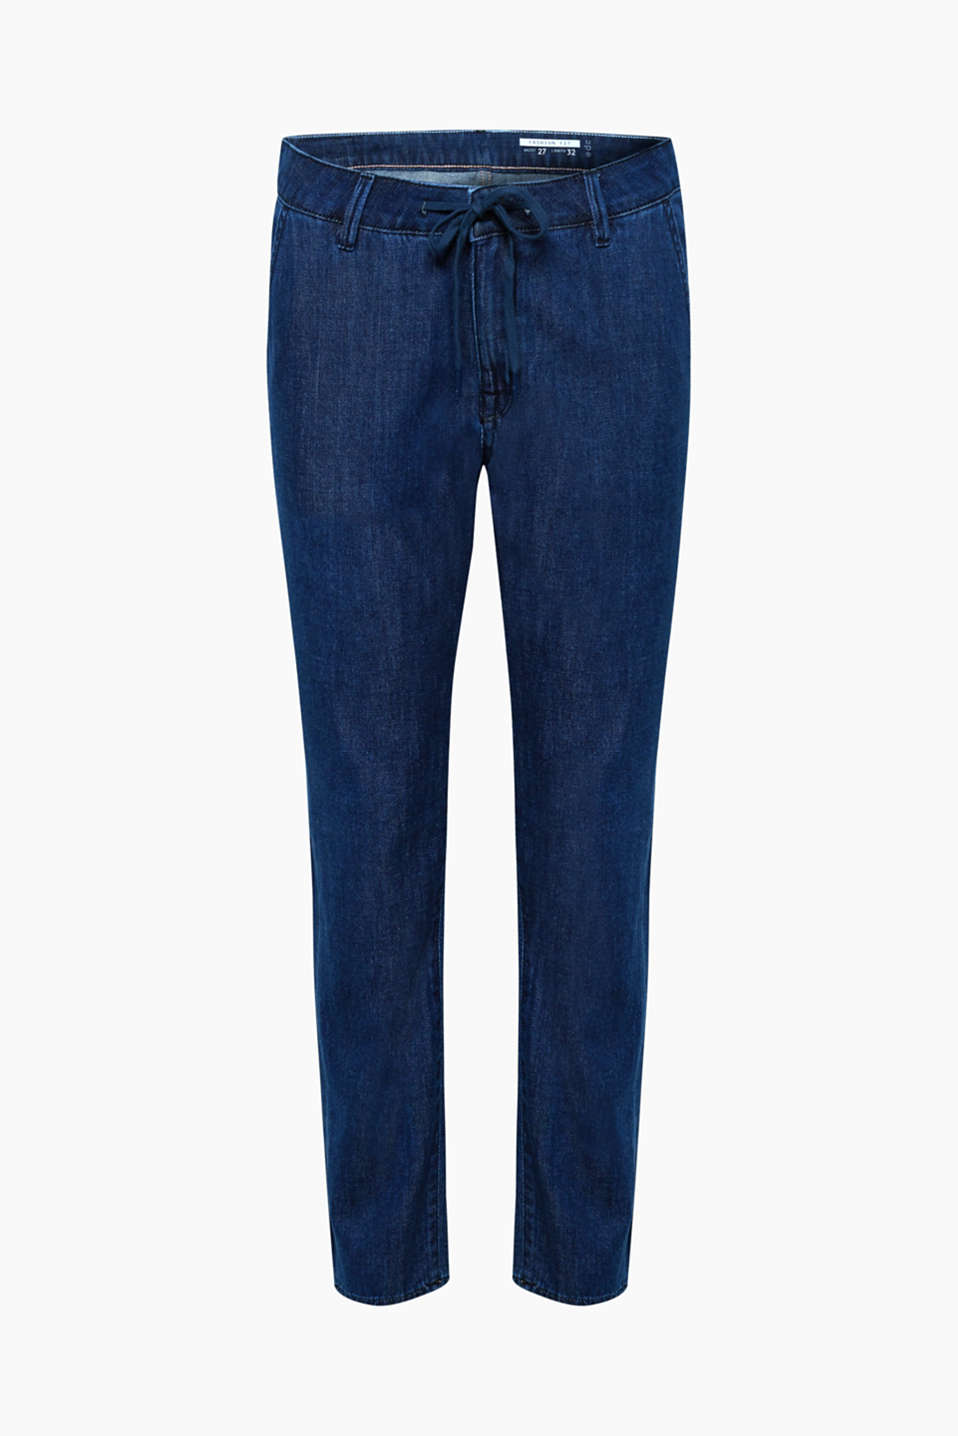 The soft cotton denim with a percentage of wool makes these jeans in a tracksuit style ultra soft and comfortable.